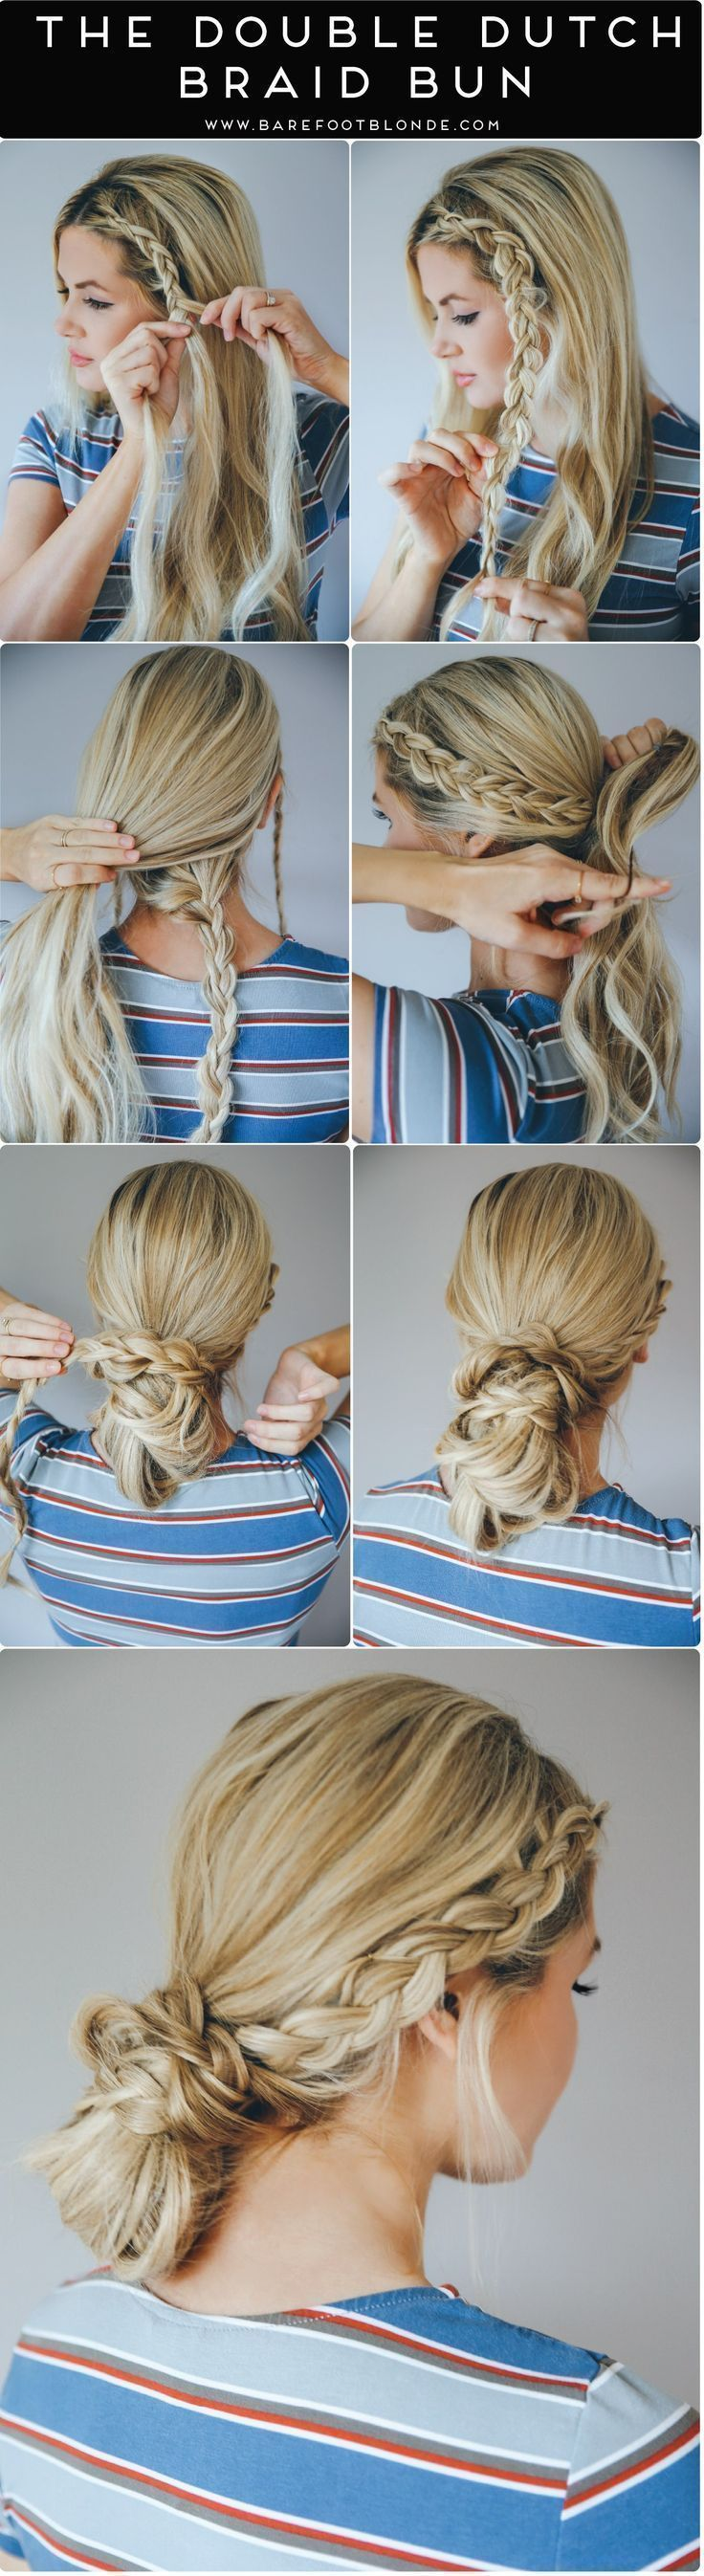 236 best Cute Hairstyles images on Pinterest